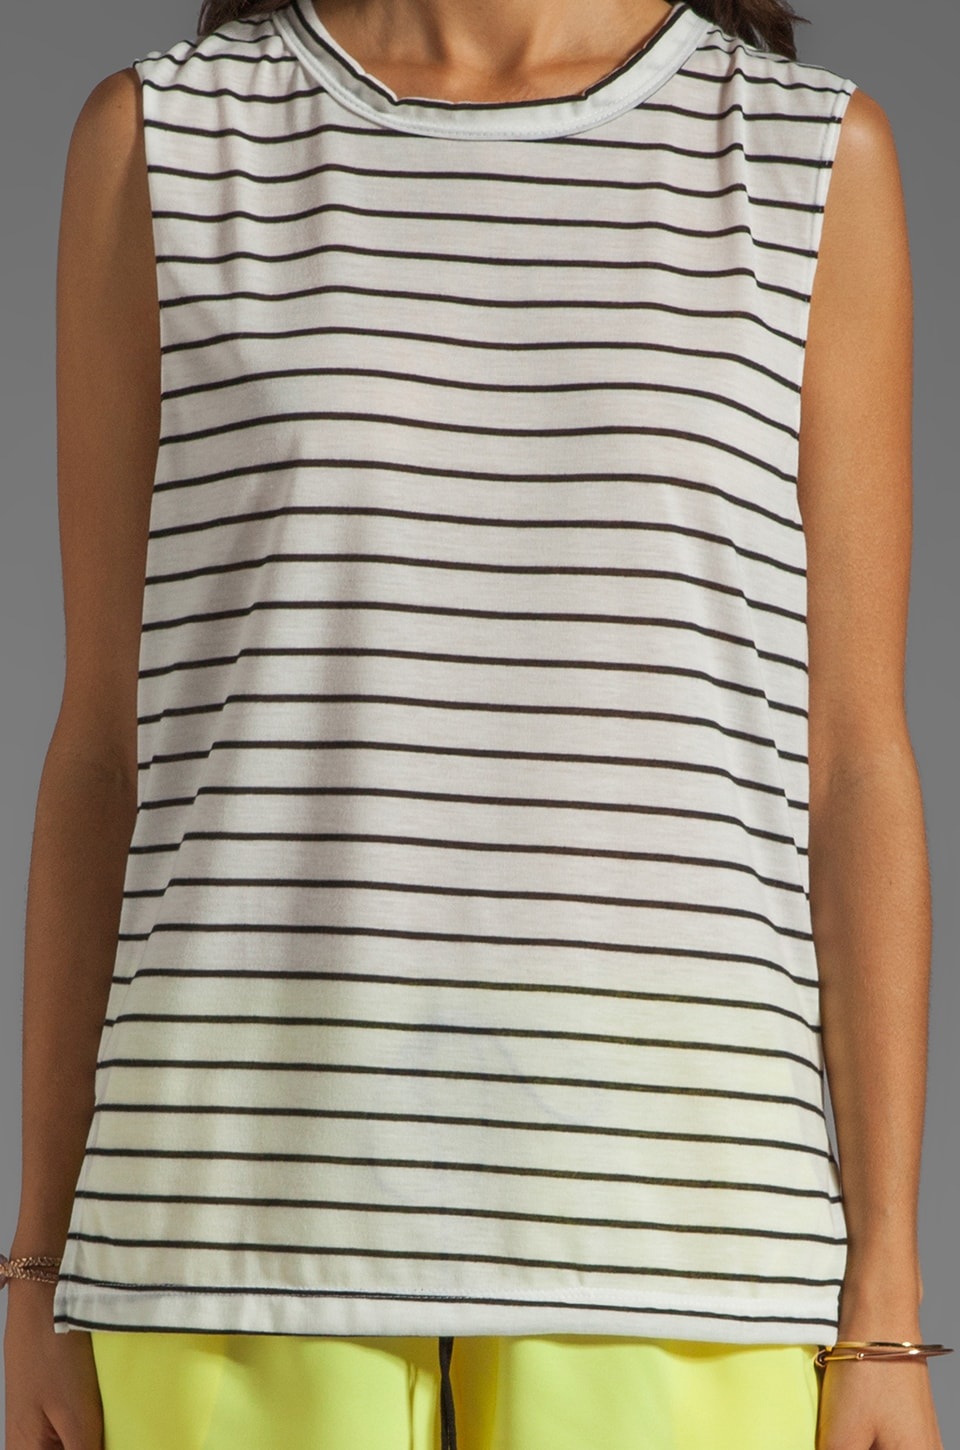 LNA Ruby Tank in White/Black Stripe